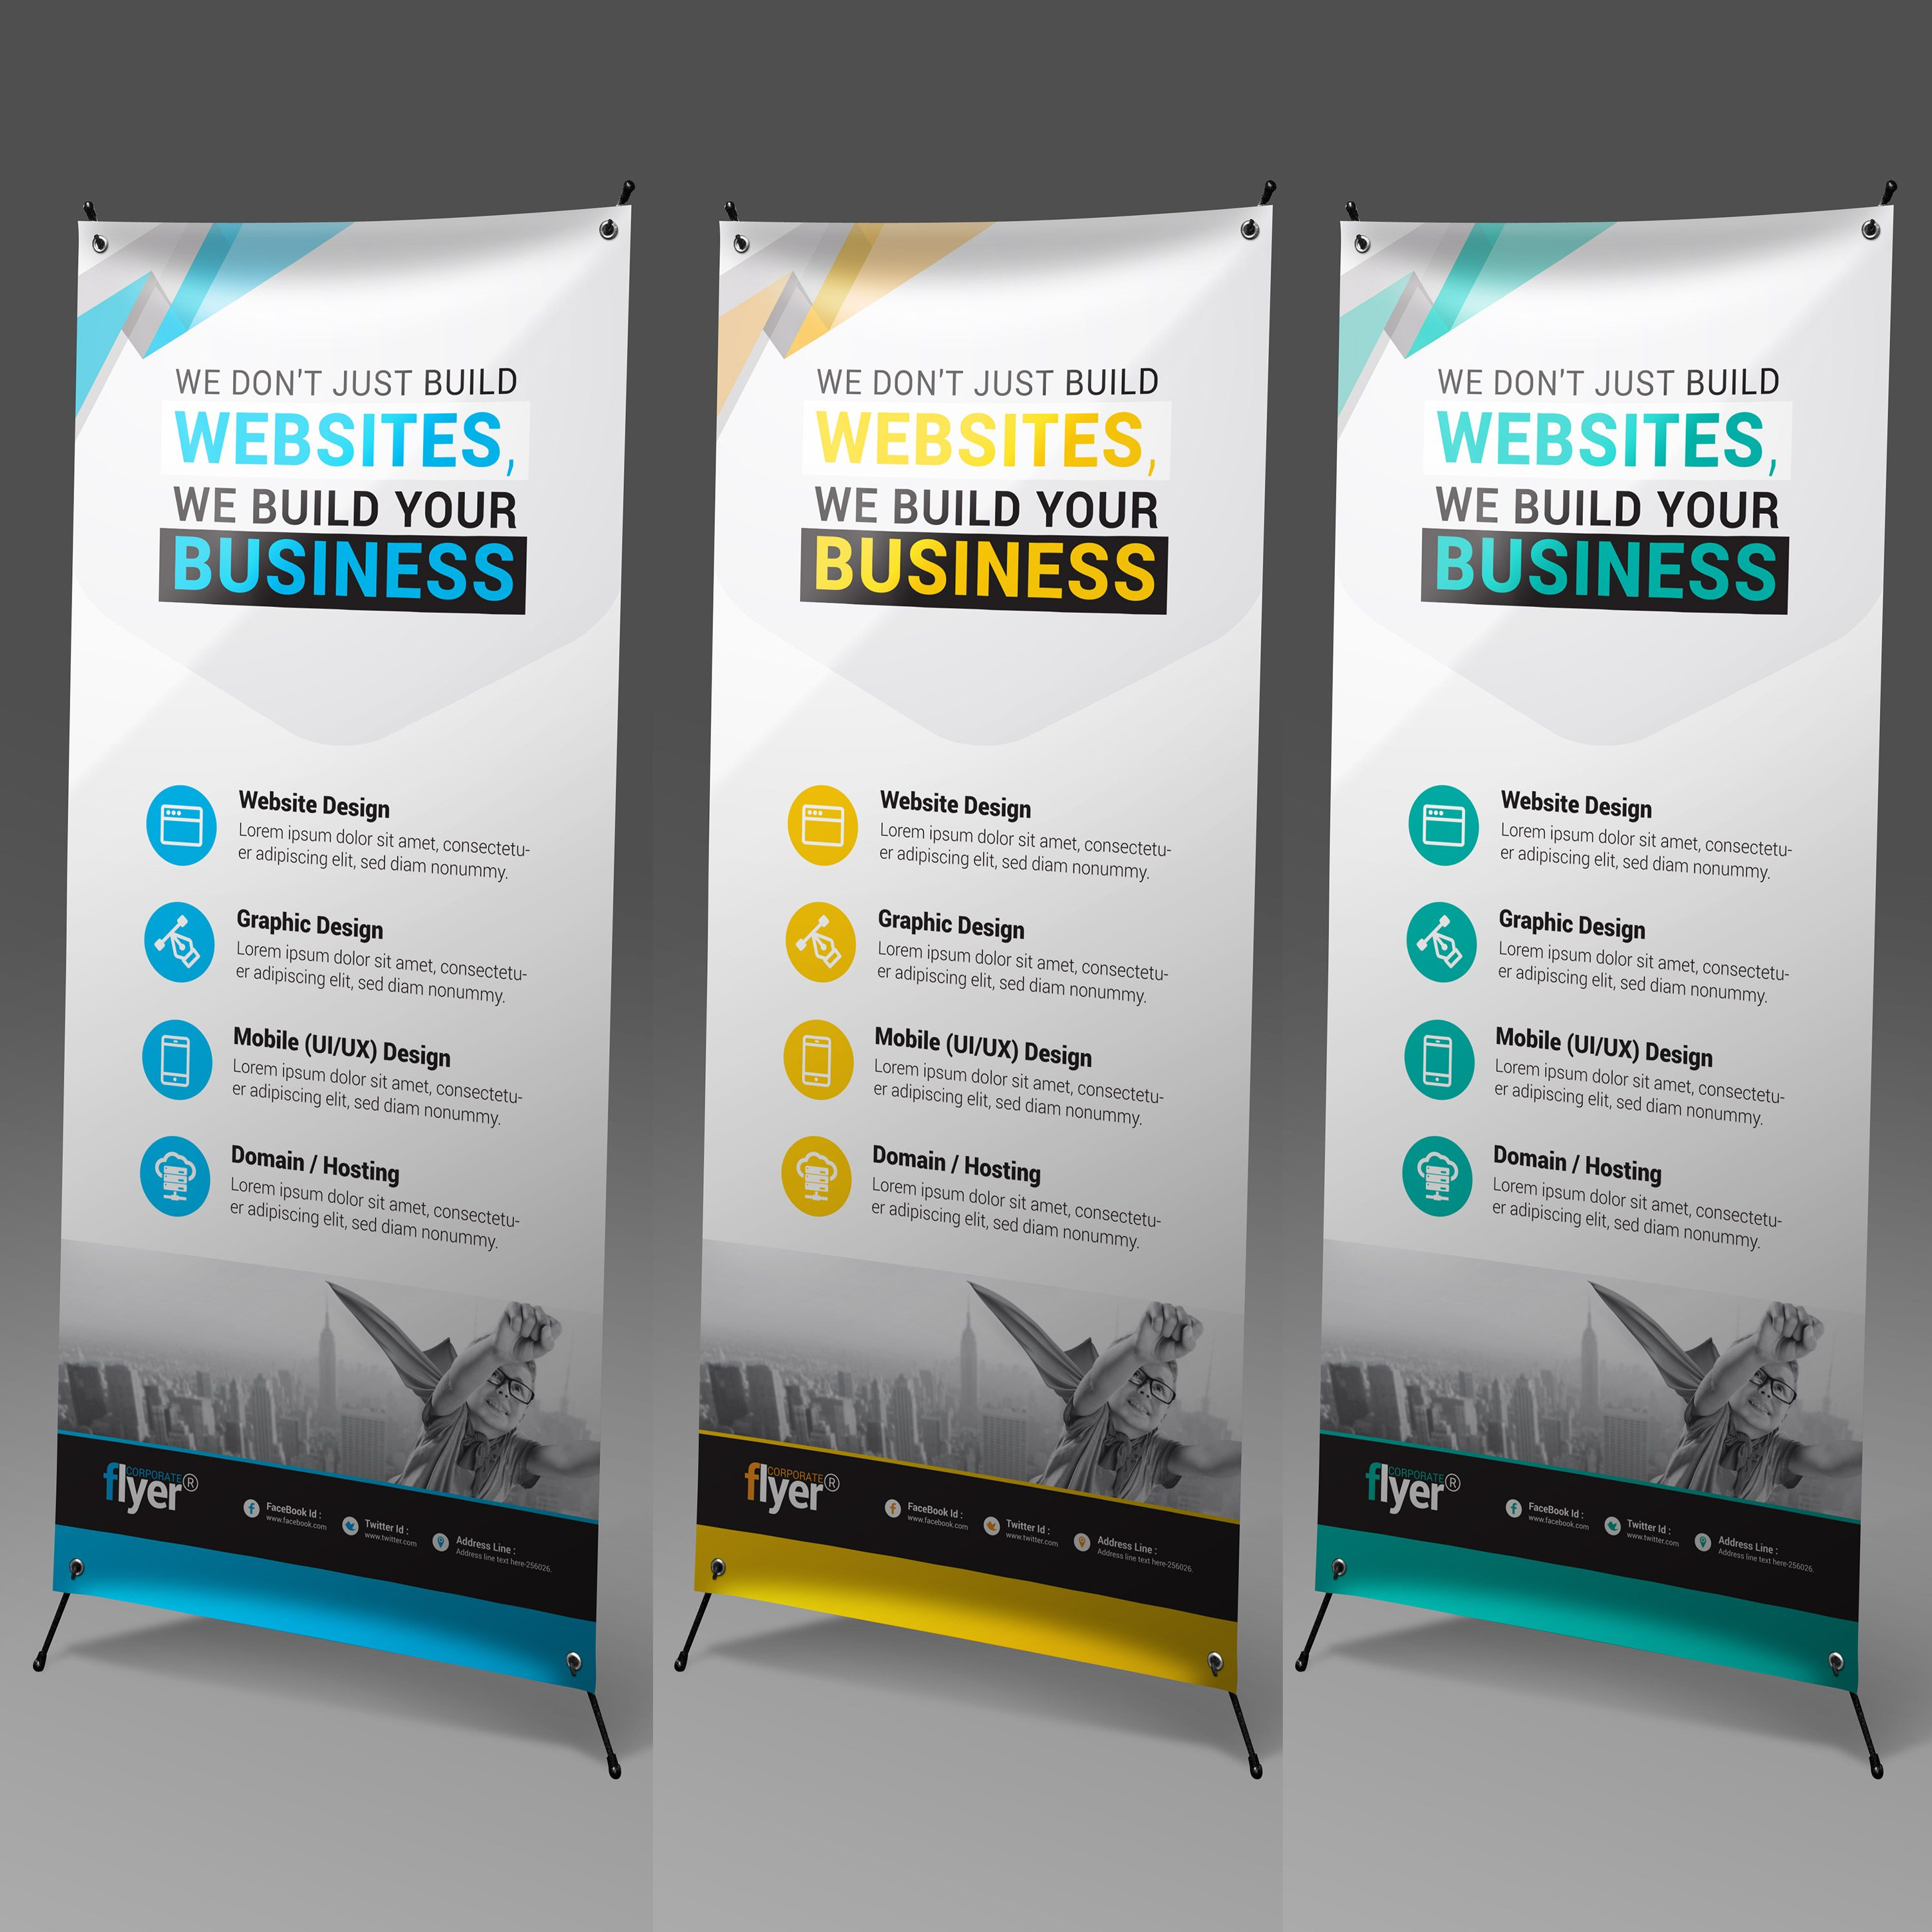 onstruction Roll-Up Banner Design Template